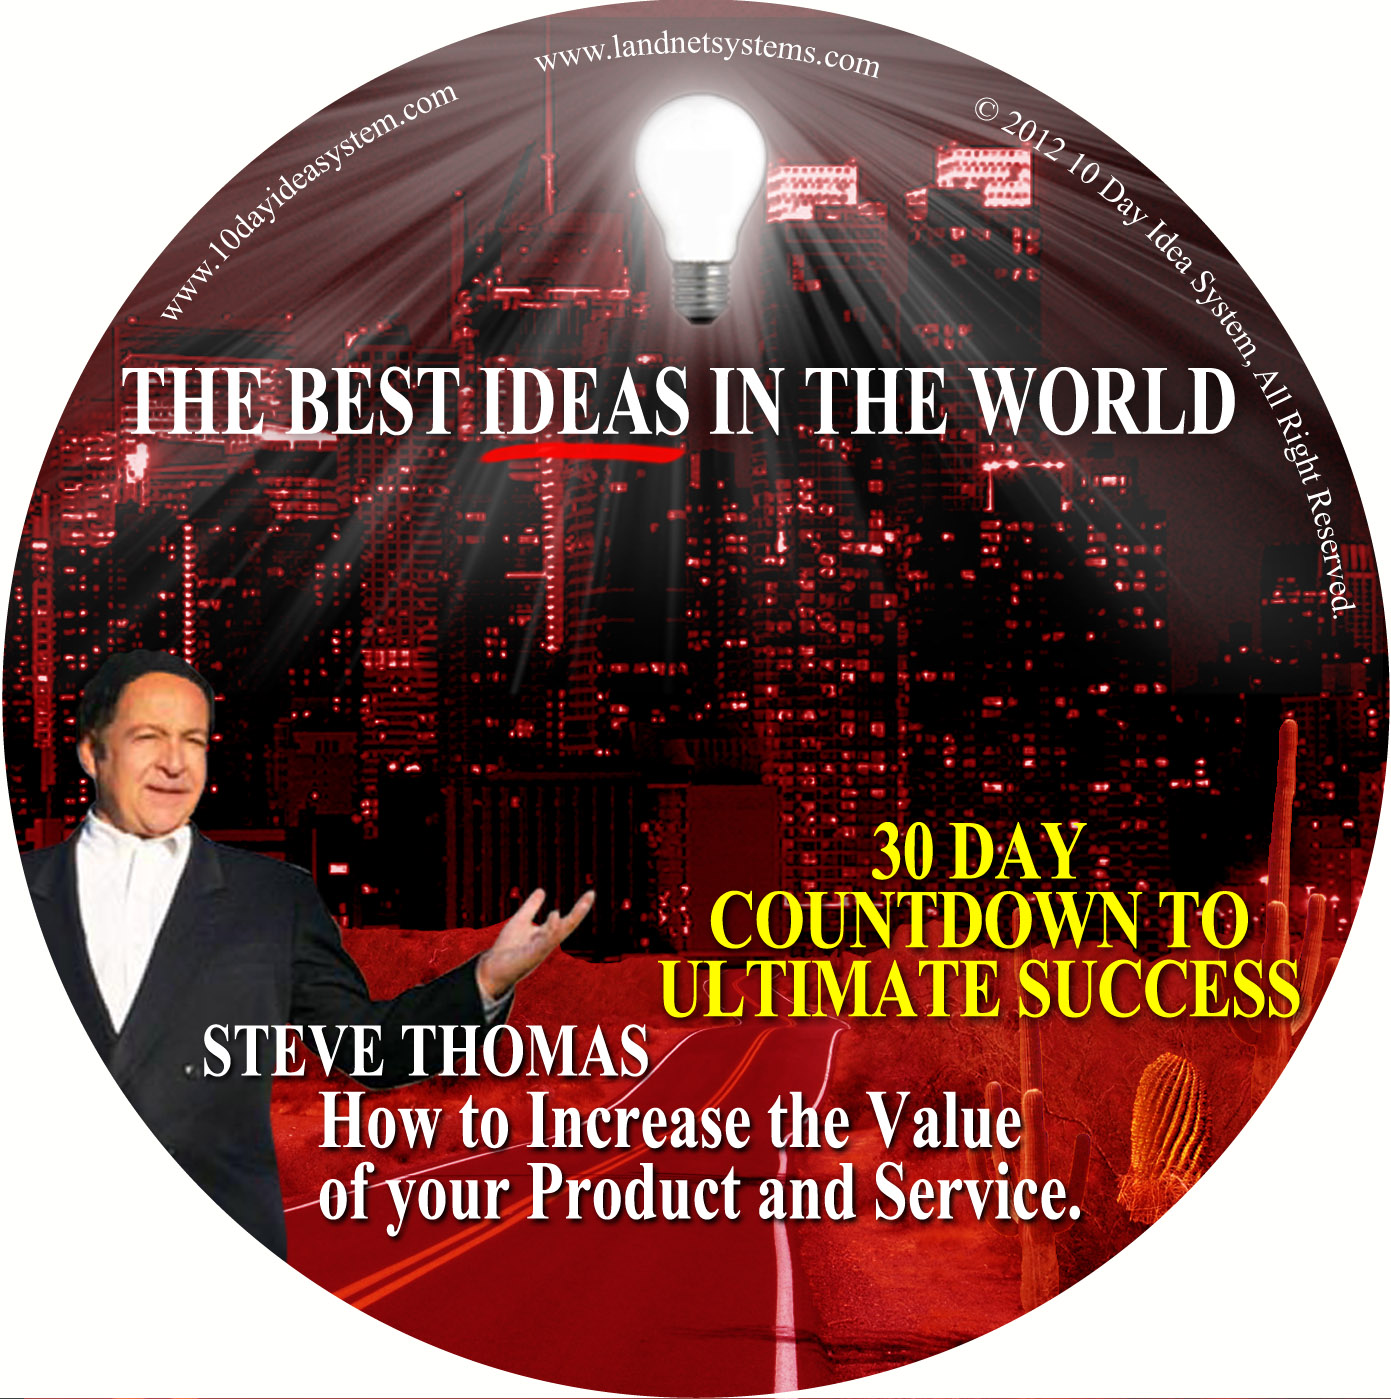 10 CD 30 DAY COUNTDOWN TO ULTIMATE SUCCESS